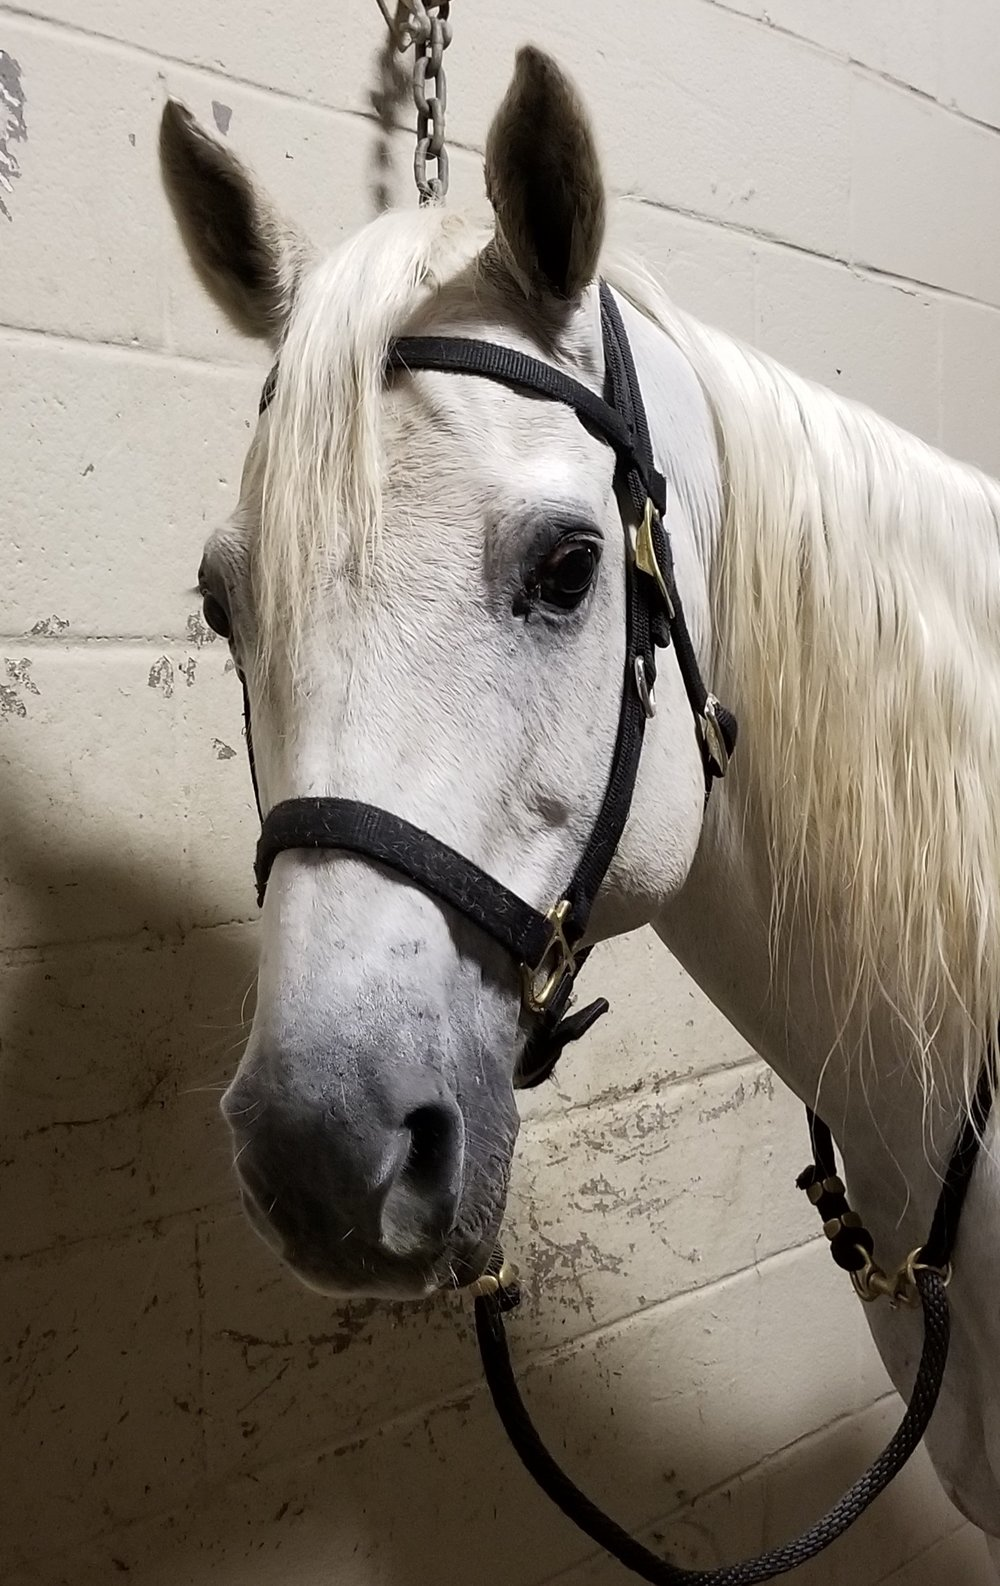 J.C. - J.C. is a Quarter Horse Gelding . His coat is Grey and he stands 16 hands high. J.C. weighs about 1300 pounds and his favorite treat is unknown at this time. J.C. was born in 2005 and has served in the New Orleans Mounted Unit since 2017.Fun Fact: J.C. is another donation by Mr. Coleman, who has been very generous to the Mounted Unit. He is new to the unit and hasn't yet made it to the street but he is being put through the preliminary evaluation and seems to have a solid foundation so we believe he will be ready for patrol very quickly.